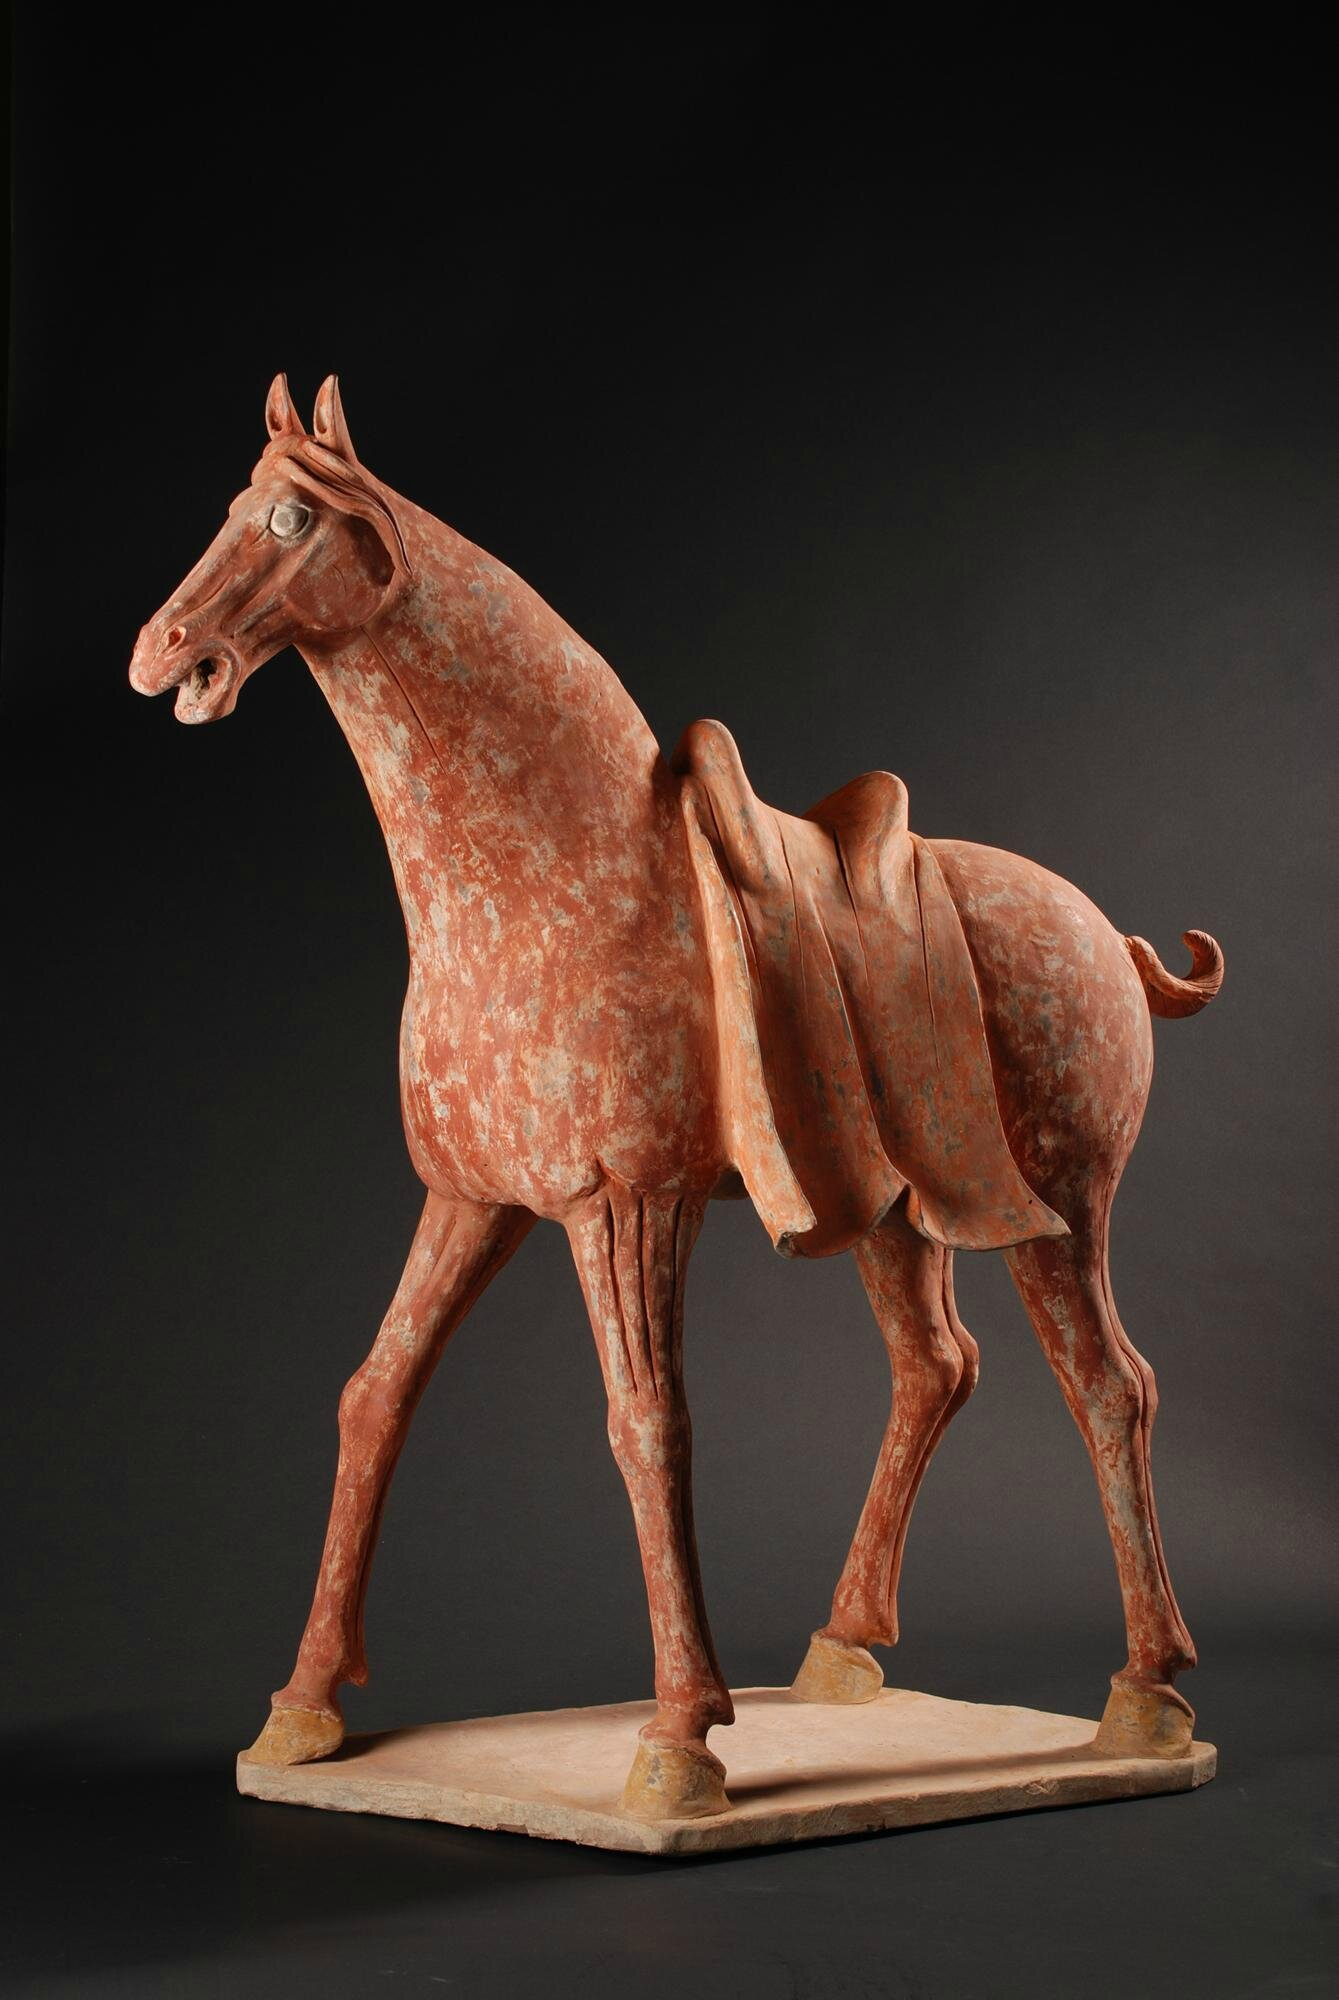 Terracotta Horse with Saddle, China, Tang Dynasty (618-907)